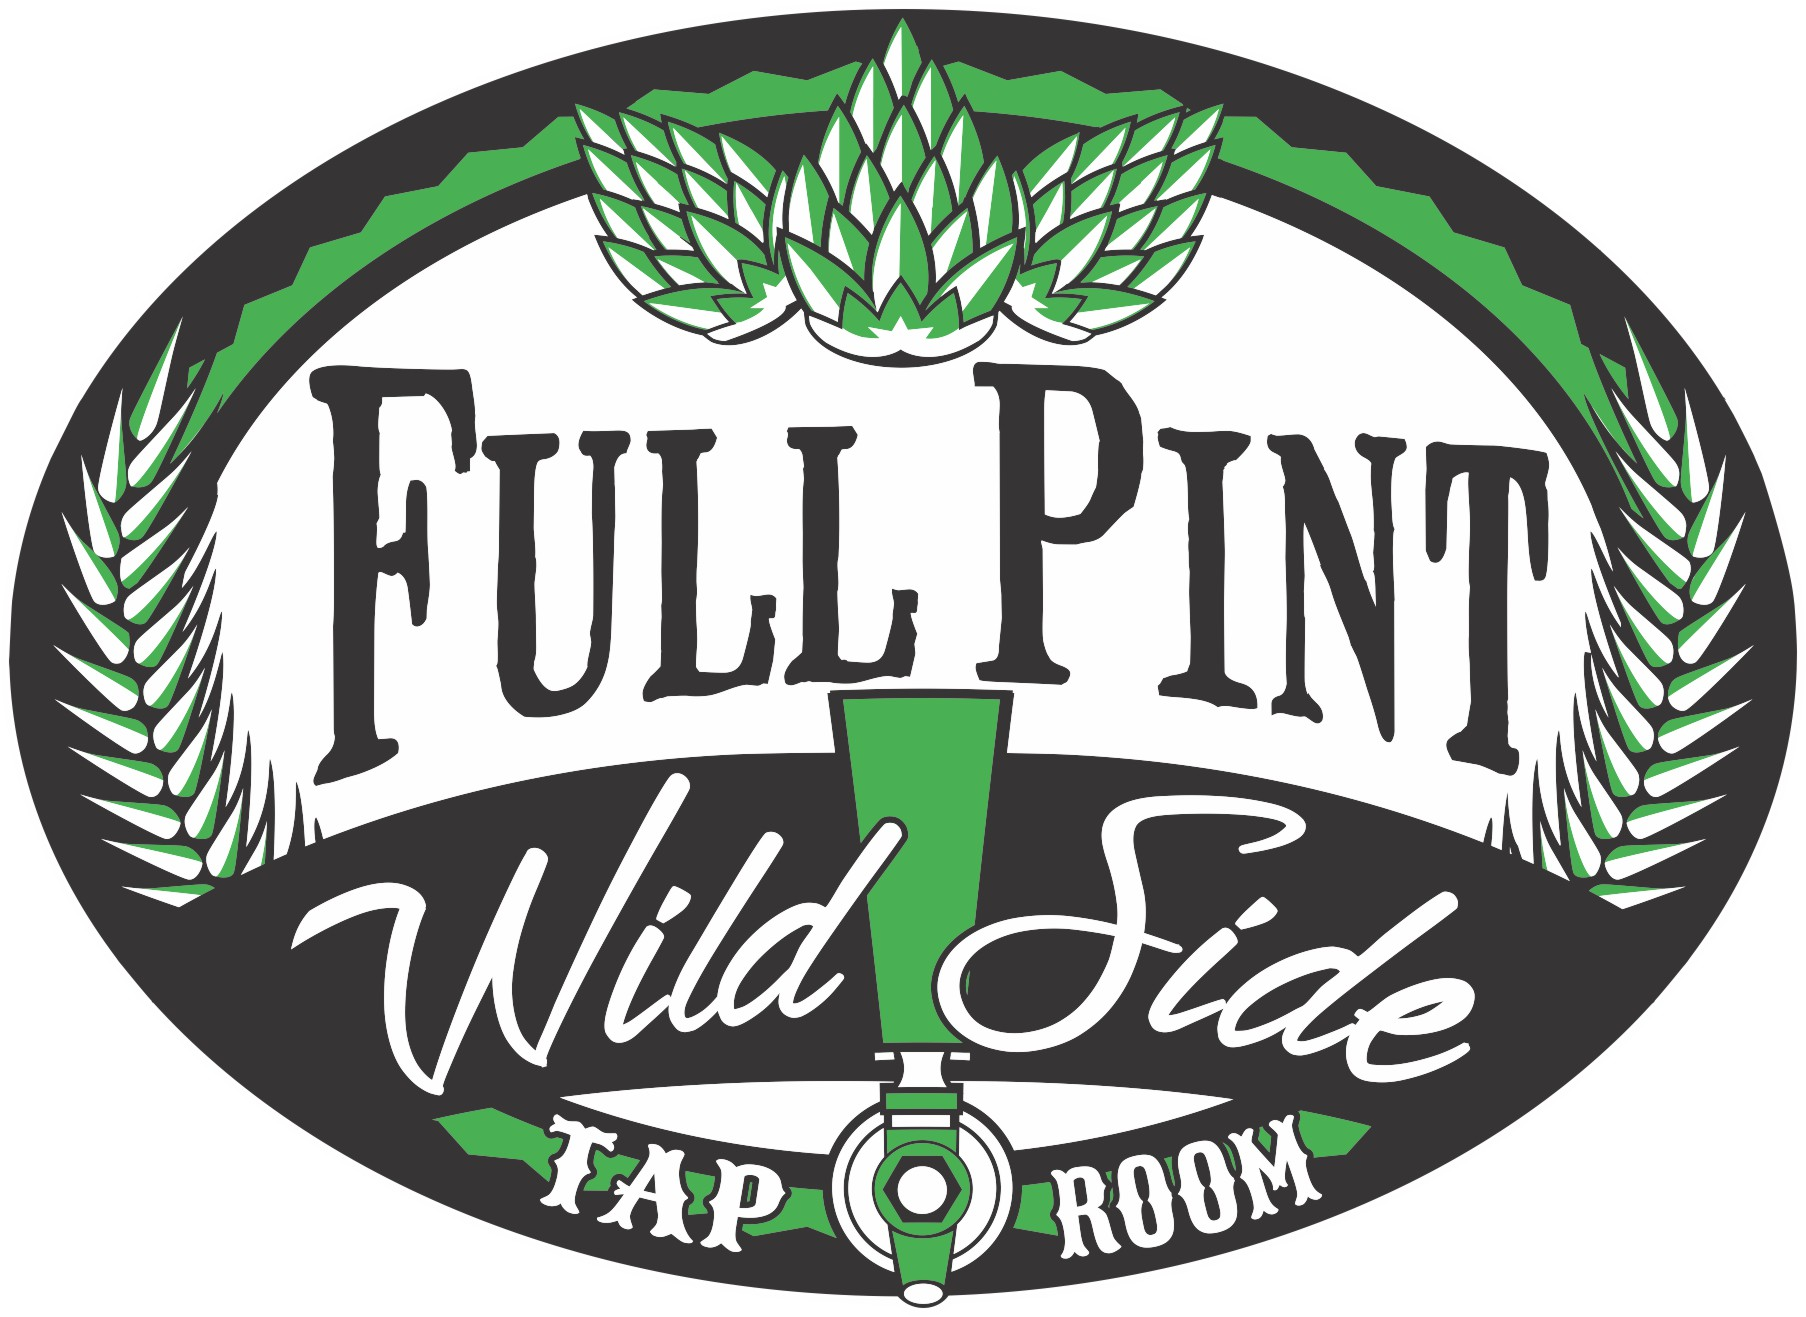 Full Pint Brewing Company  opened its doors as a production brewery in 2009. Since then, they have opened two on-premise pubs, including the Wild Side pub in Lawrenceville, and expanded distribution into several states. Although their flagship brew, White Lightning, has always been a primary focus, founders/brewmasters Barrett Goddard and Sean Hallisey use their 35+ years of professional brewing experience to craft everything from Flemish style sour ales to chili pepper Berliner Weisse.